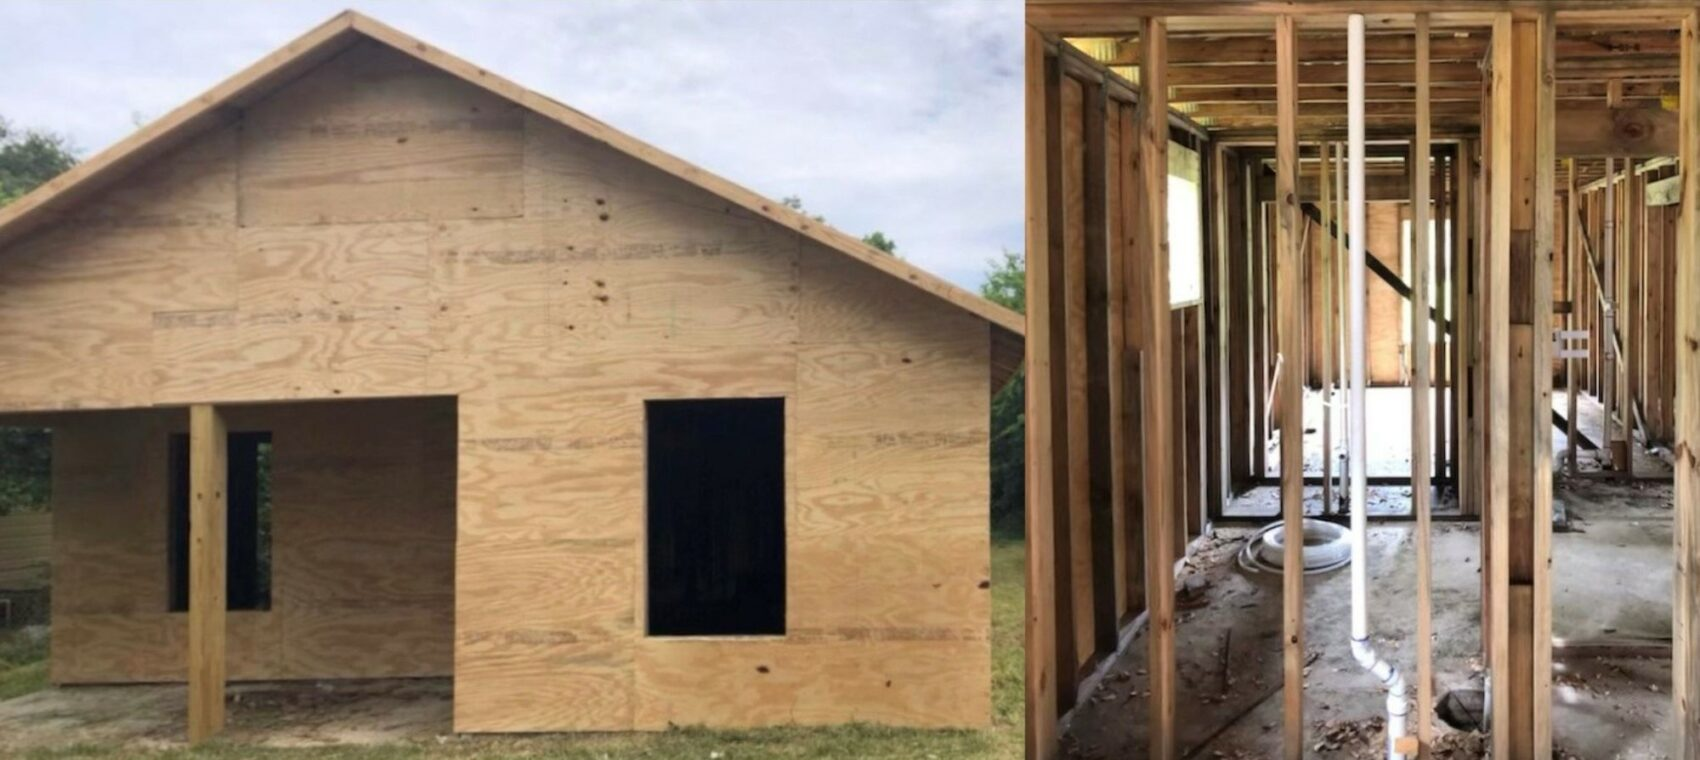 Ebony Brooks' house under construction: the exterior house frame on the left and the interior house frame on the right.